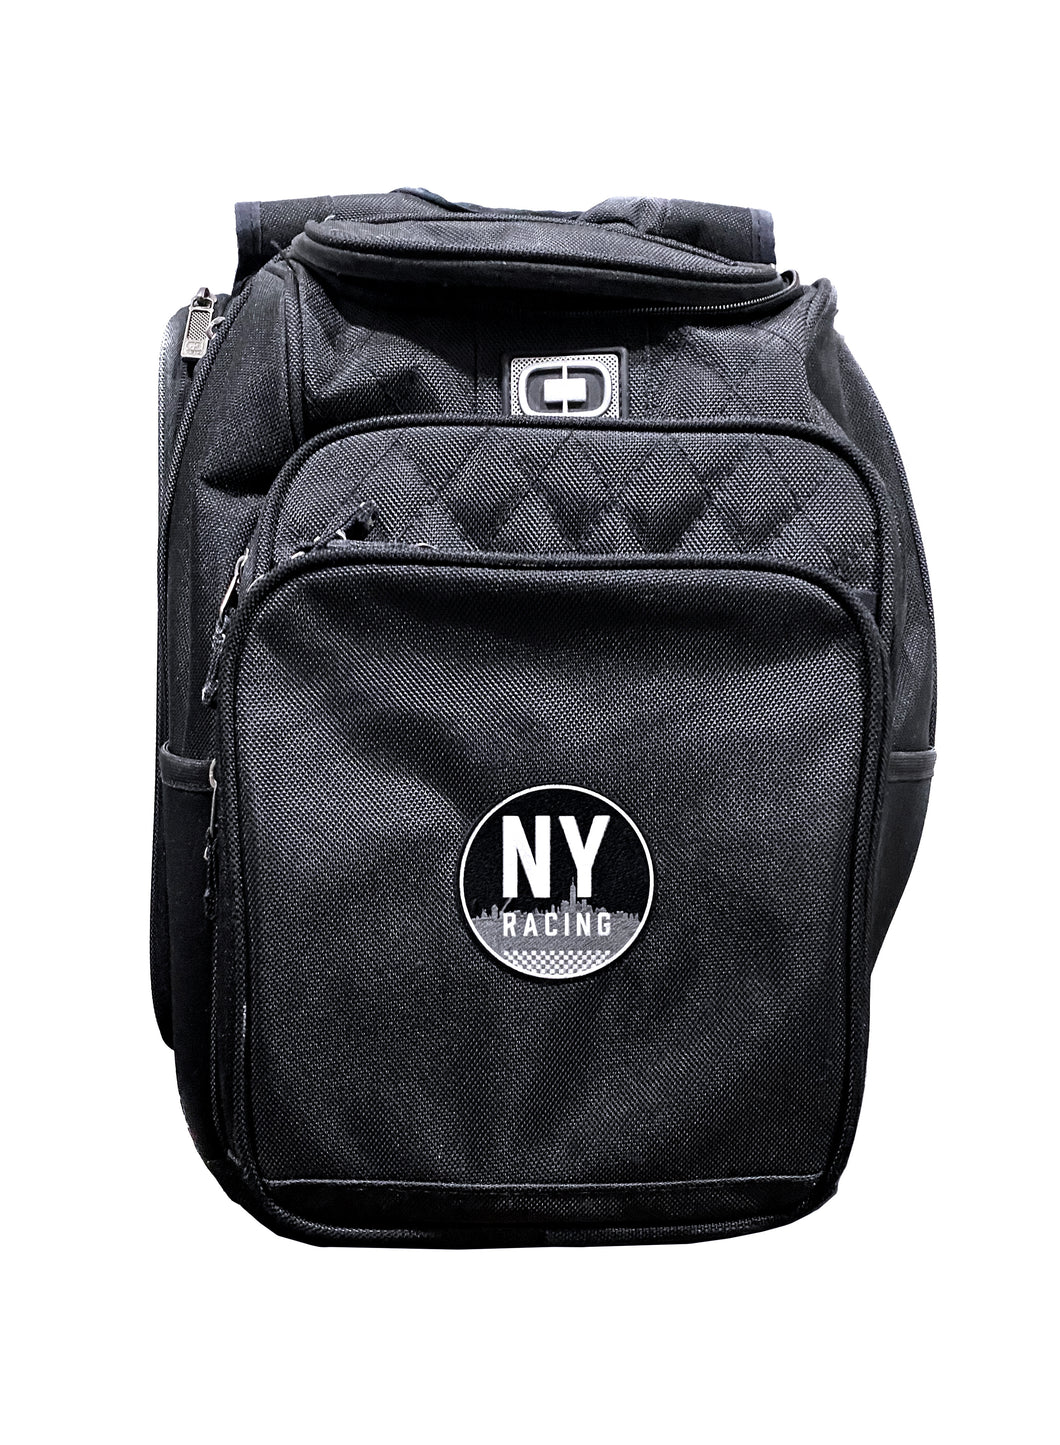 NY Racing Ogio Backpack